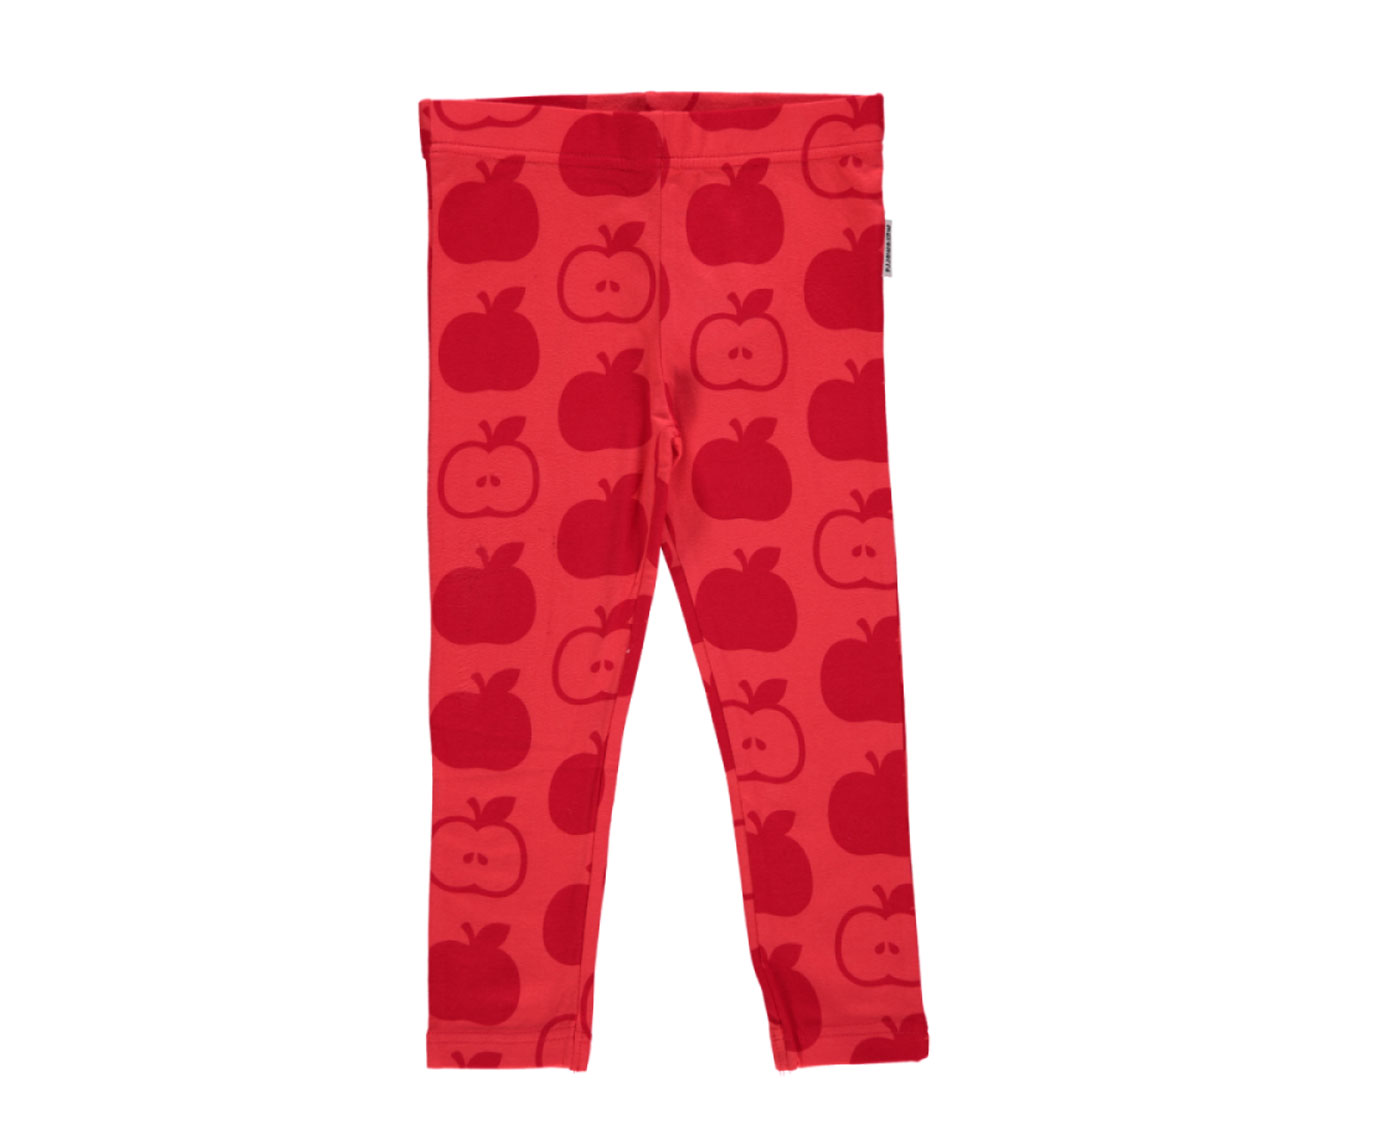 Legging 'Apple red' 1